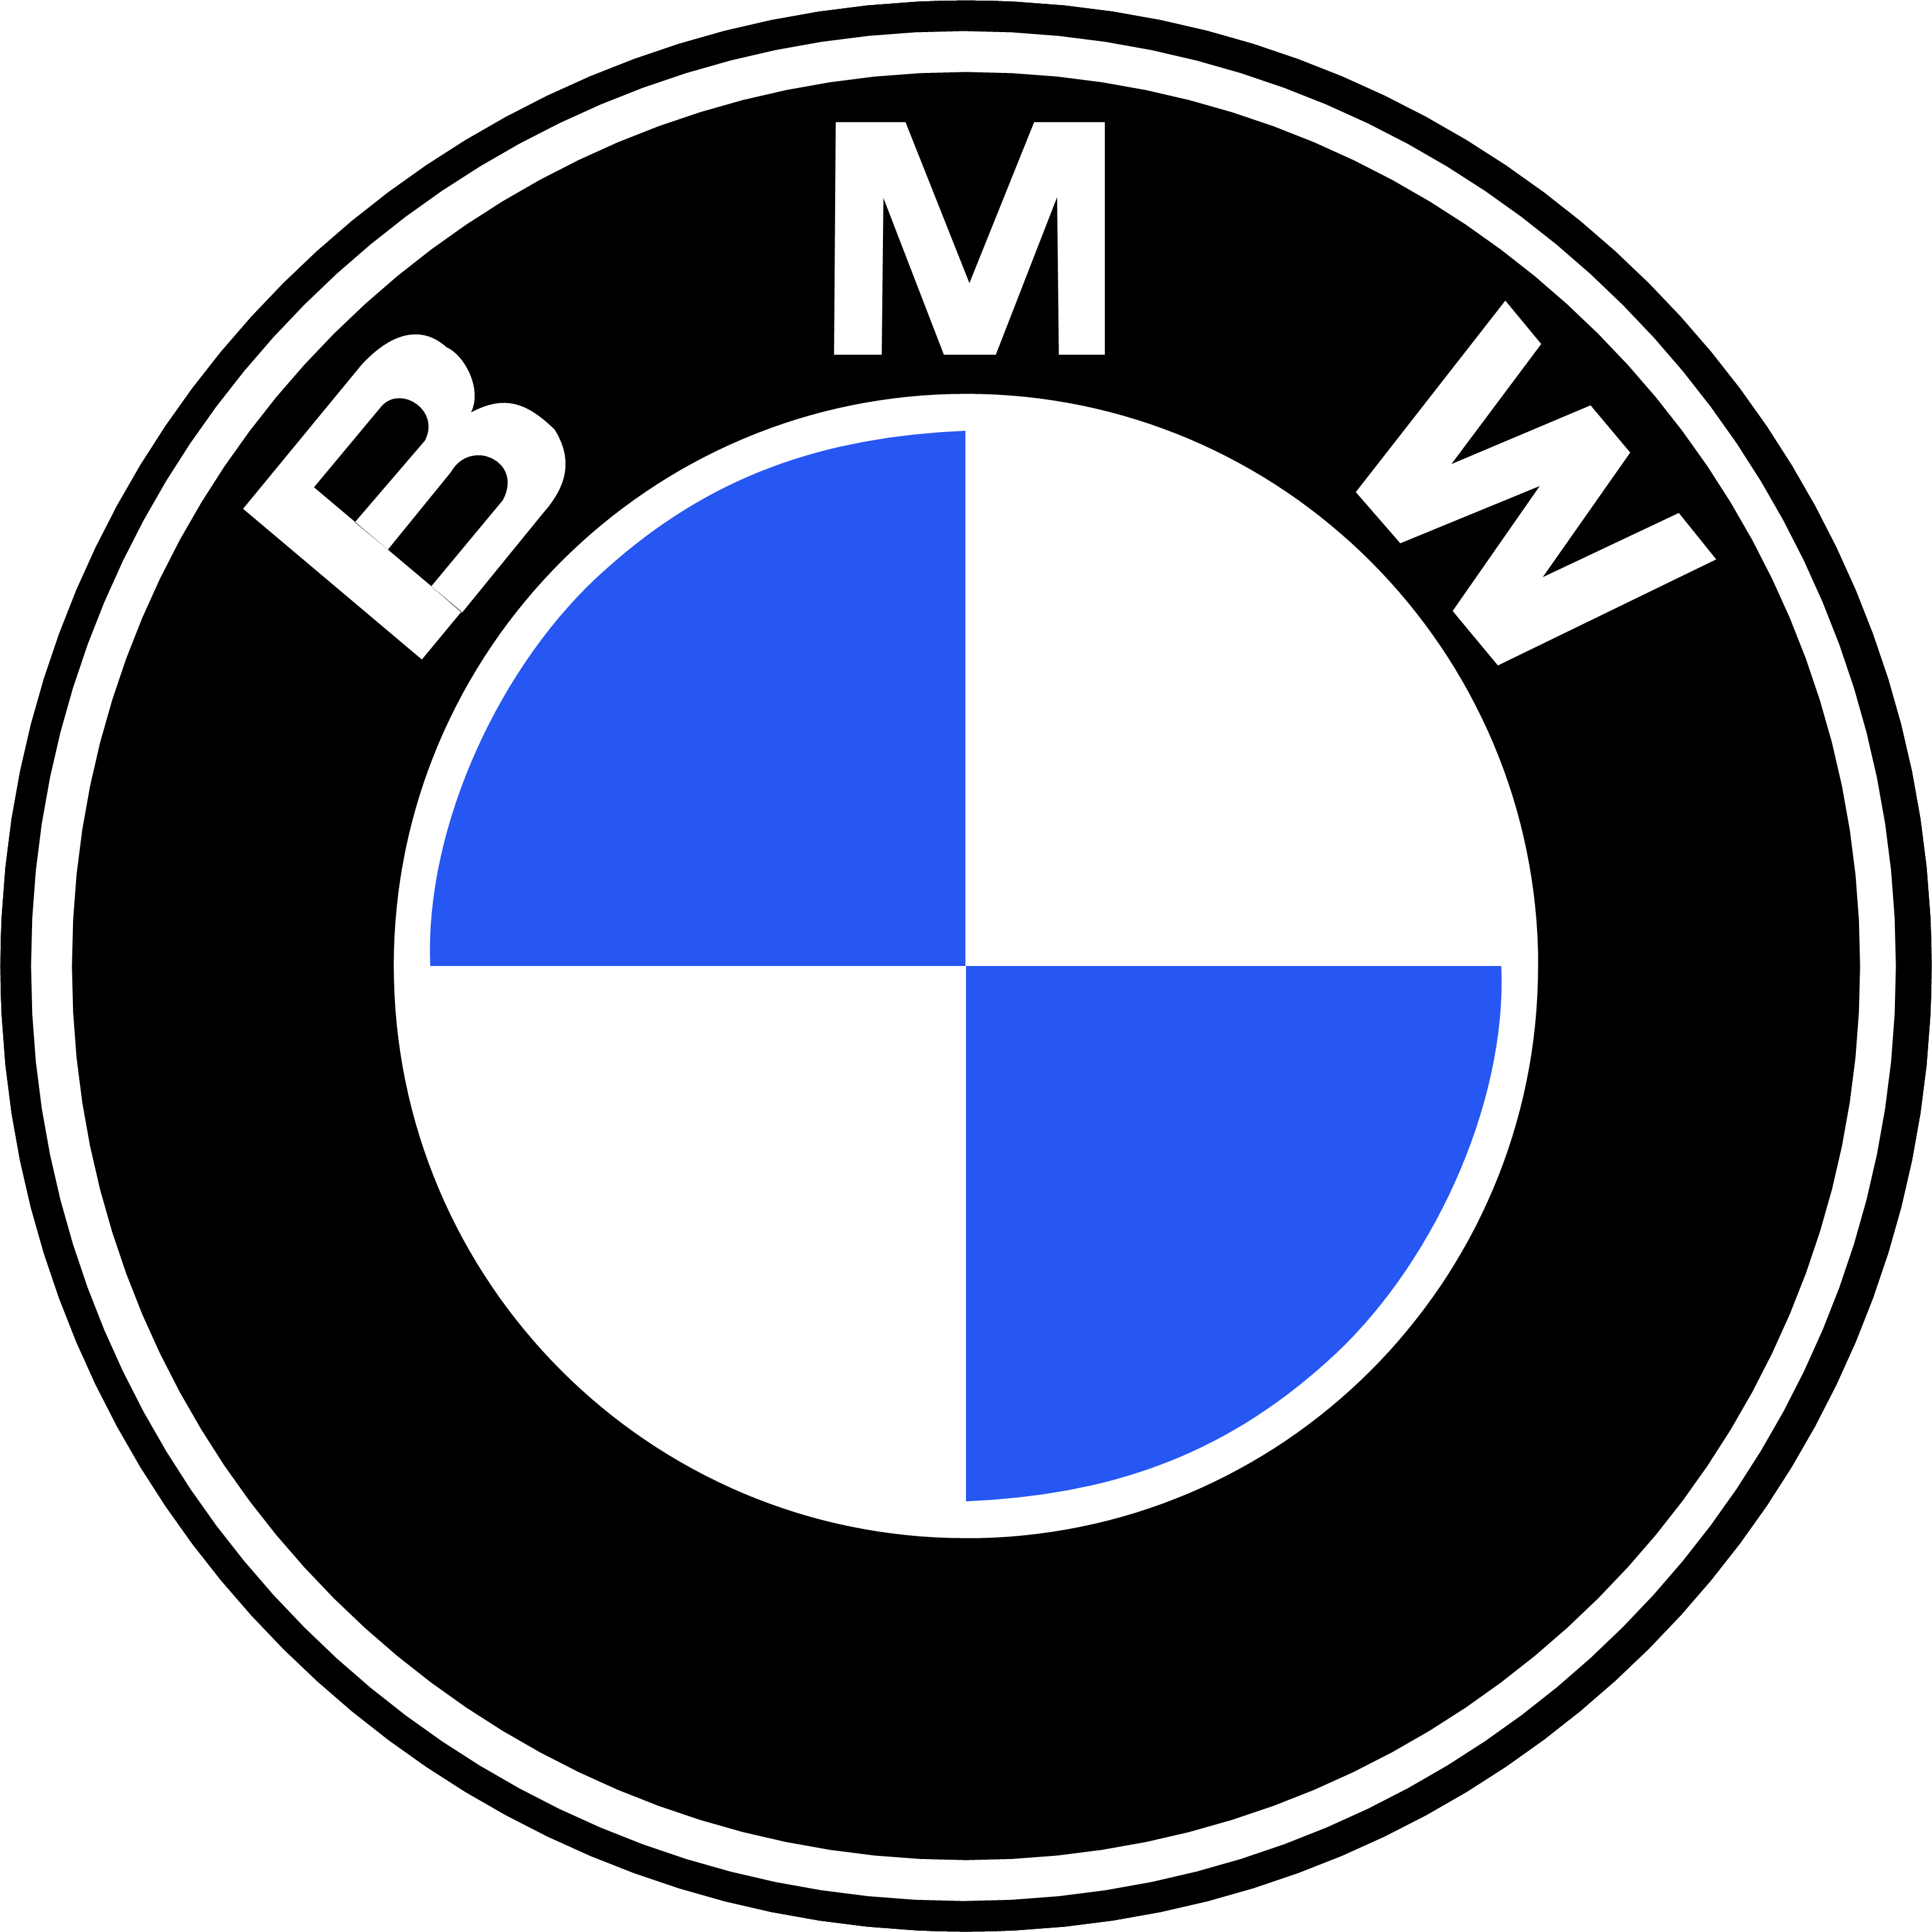 Pin By Wes Smith On Bmw Pinterest Bmw Logo Cars And Logos